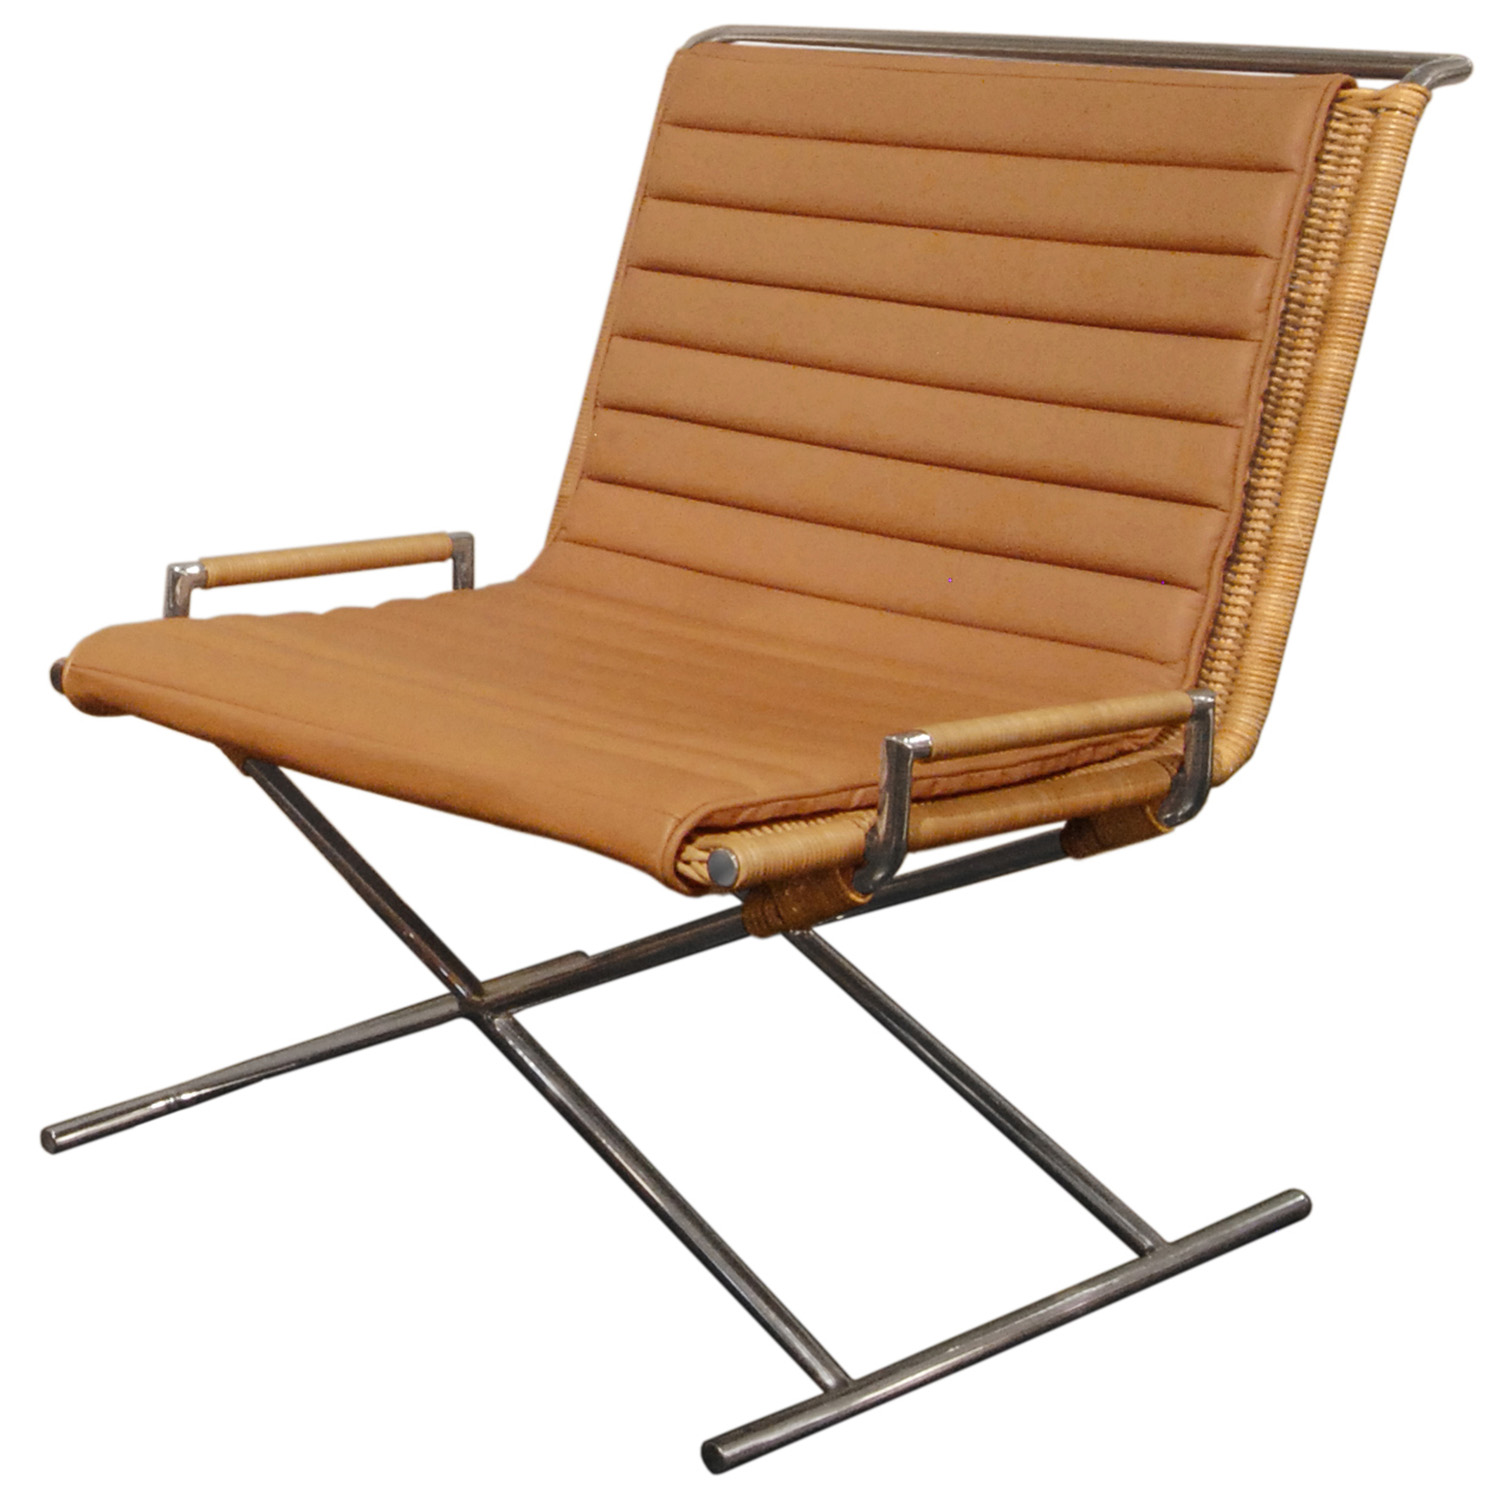 Bennet 120 Sled Chairs loungechairs115 angle view hires.jpg